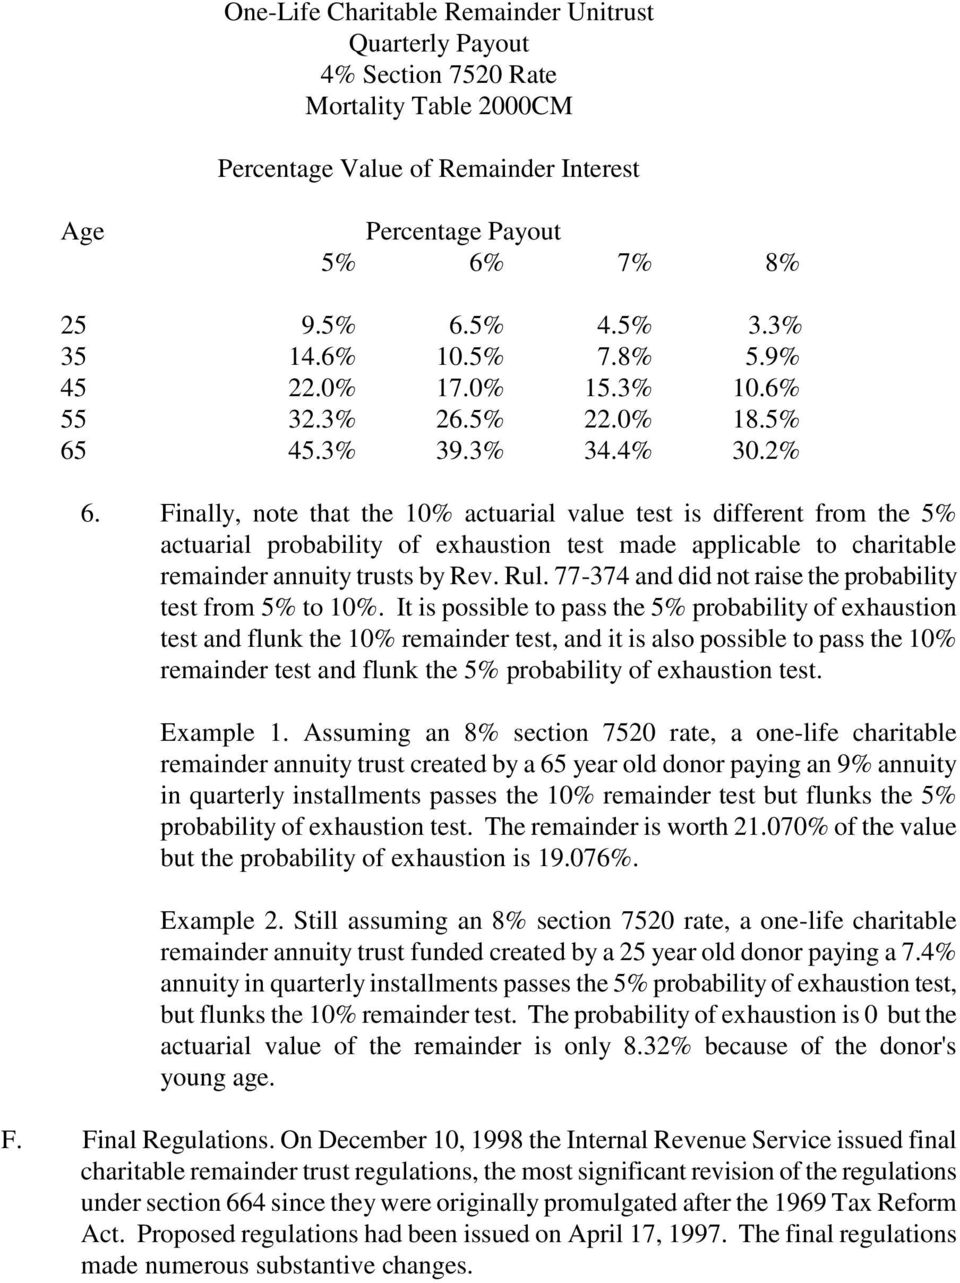 Finally, note that the 10% actuarial value test is different from the 5% actuarial probability of exhaustion test made applicable to charitable remainder annuity trusts by Rev. Rul.